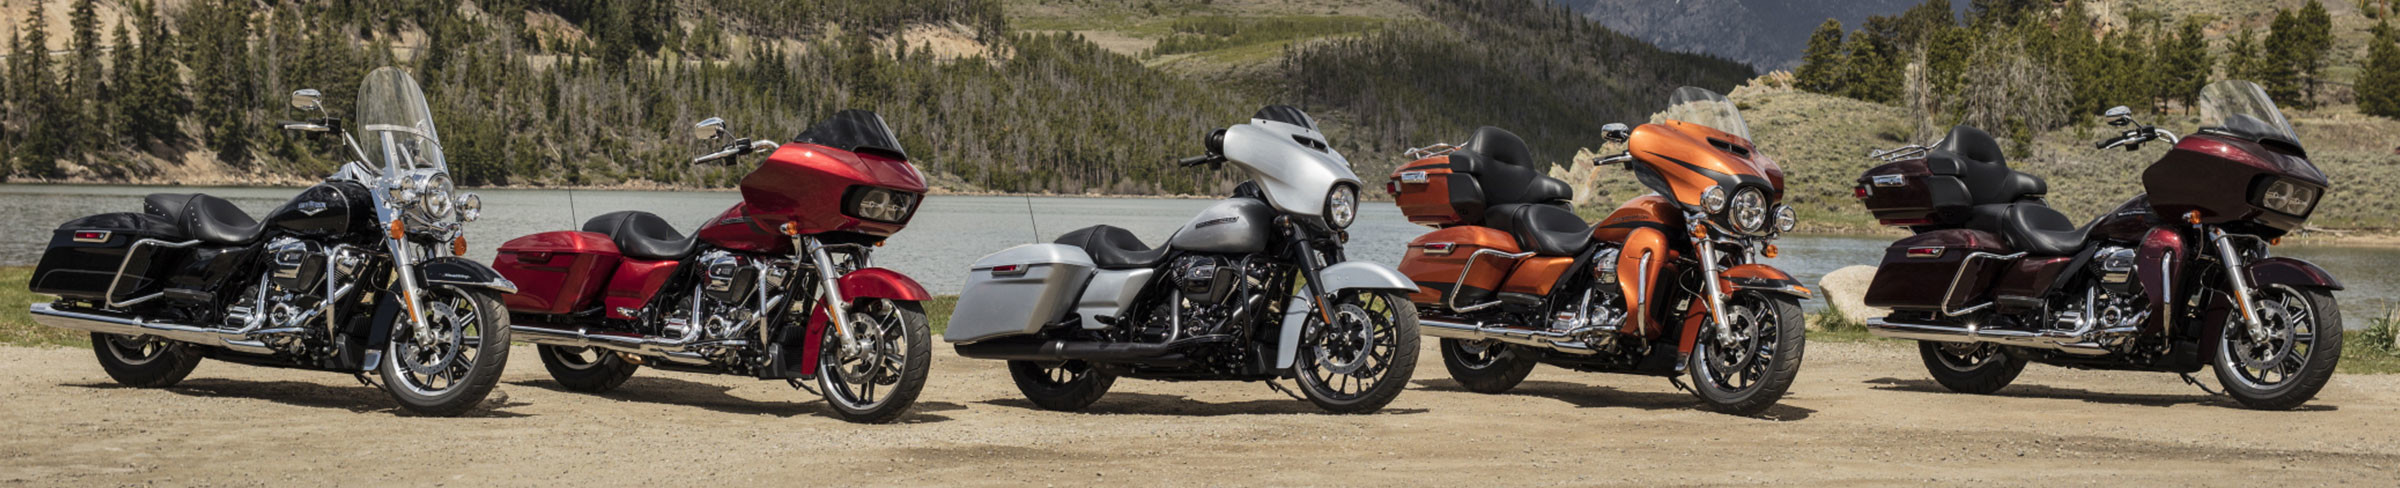 Dealer Specials at Brandt's Harley-Davidson®